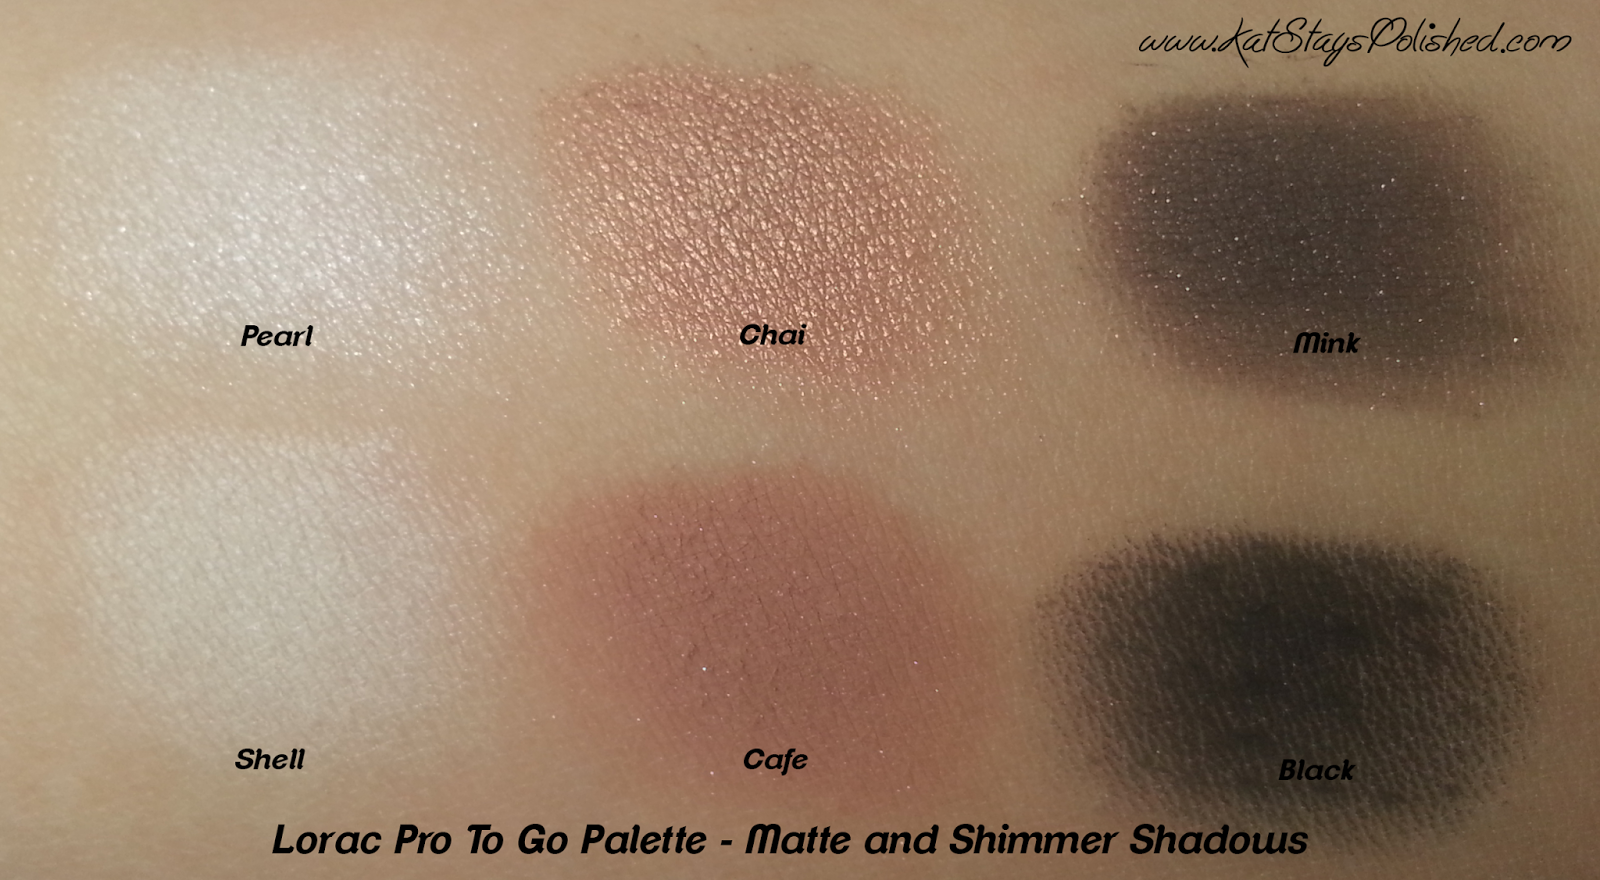 Lorac Pro To Go Palette - Matte and Shimmer Shadow Swatches